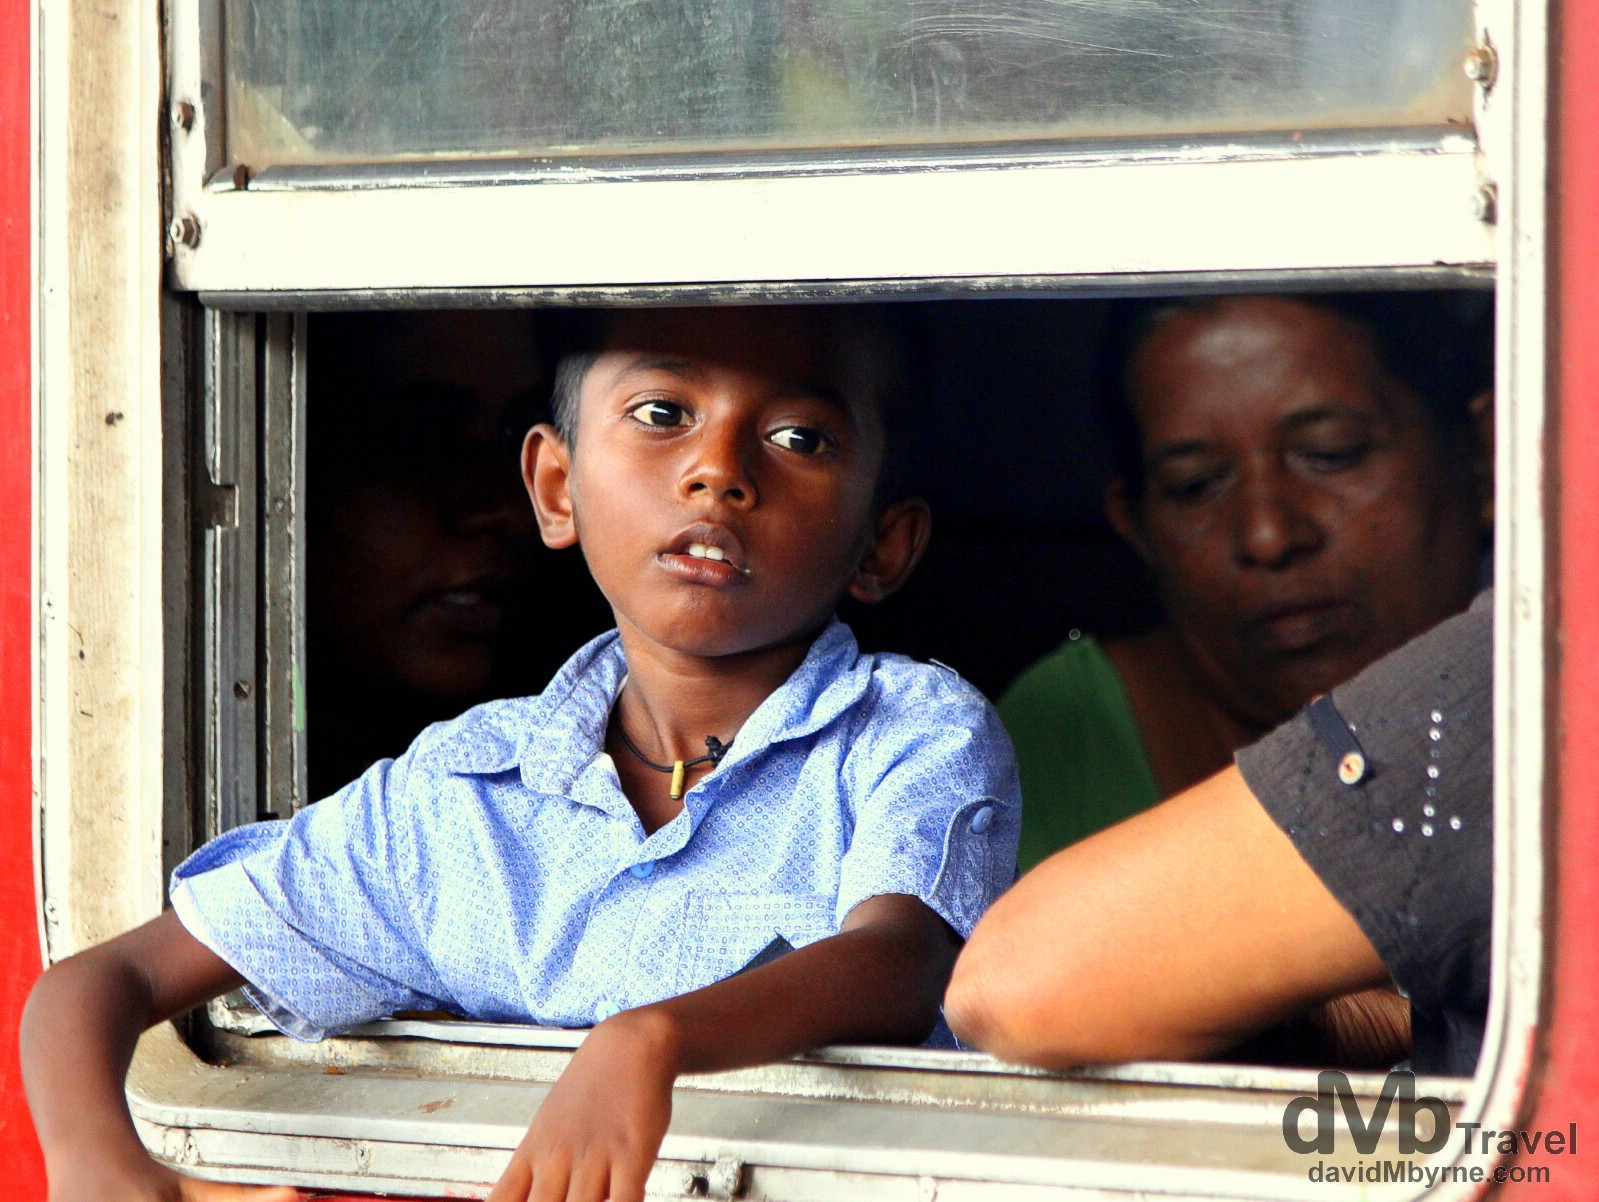 Waiting to depart Galle train station in southern Sri Lanka, August 31st 2012.